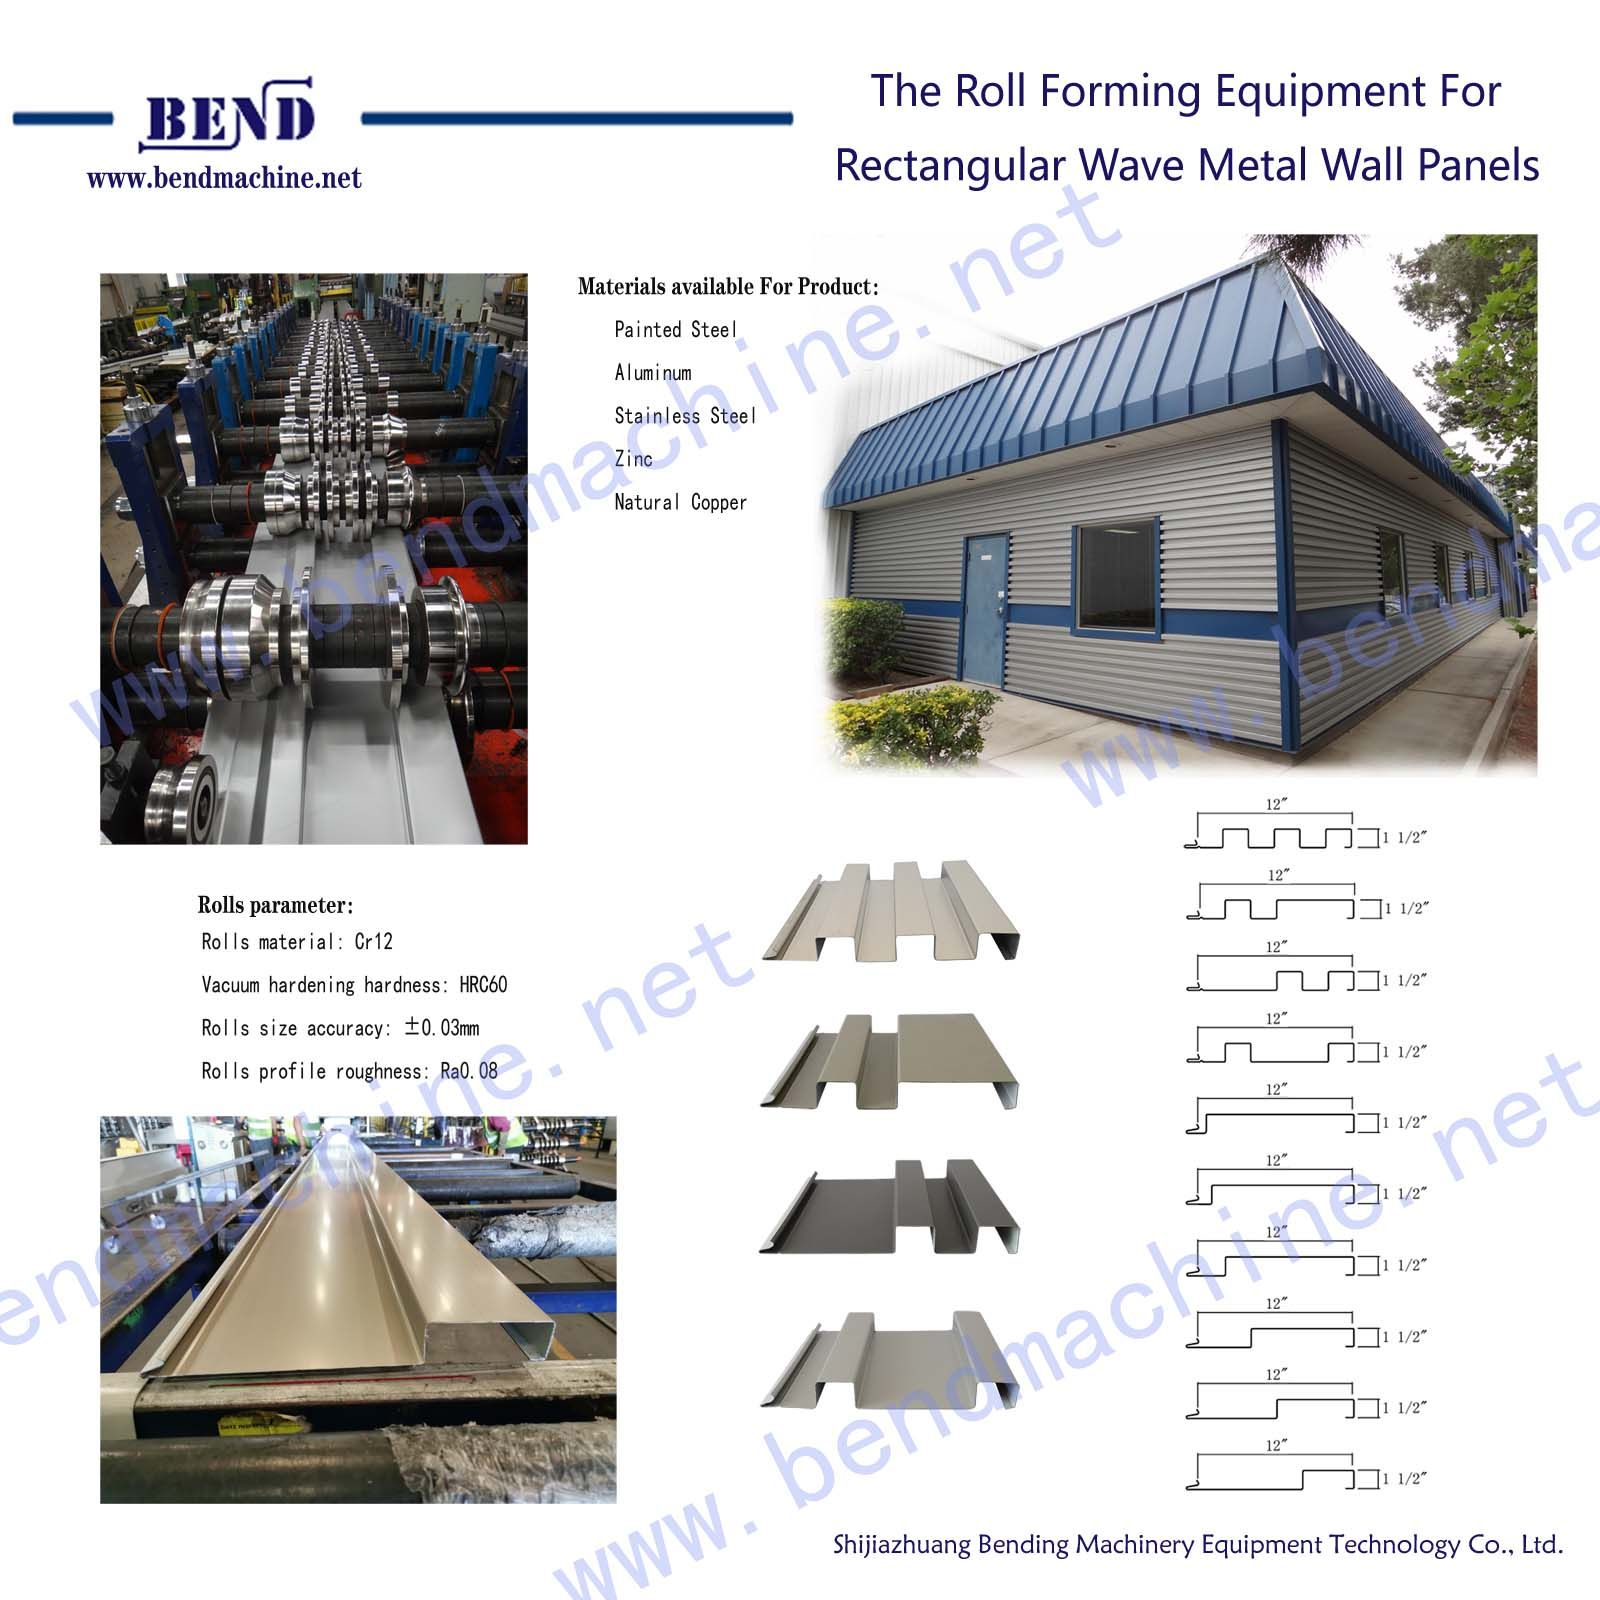 The Roll Forming Equipment For Rectangular Wave Metal Wall Panels In 2020 Metal Wall Panel Roll Forming Rectangular